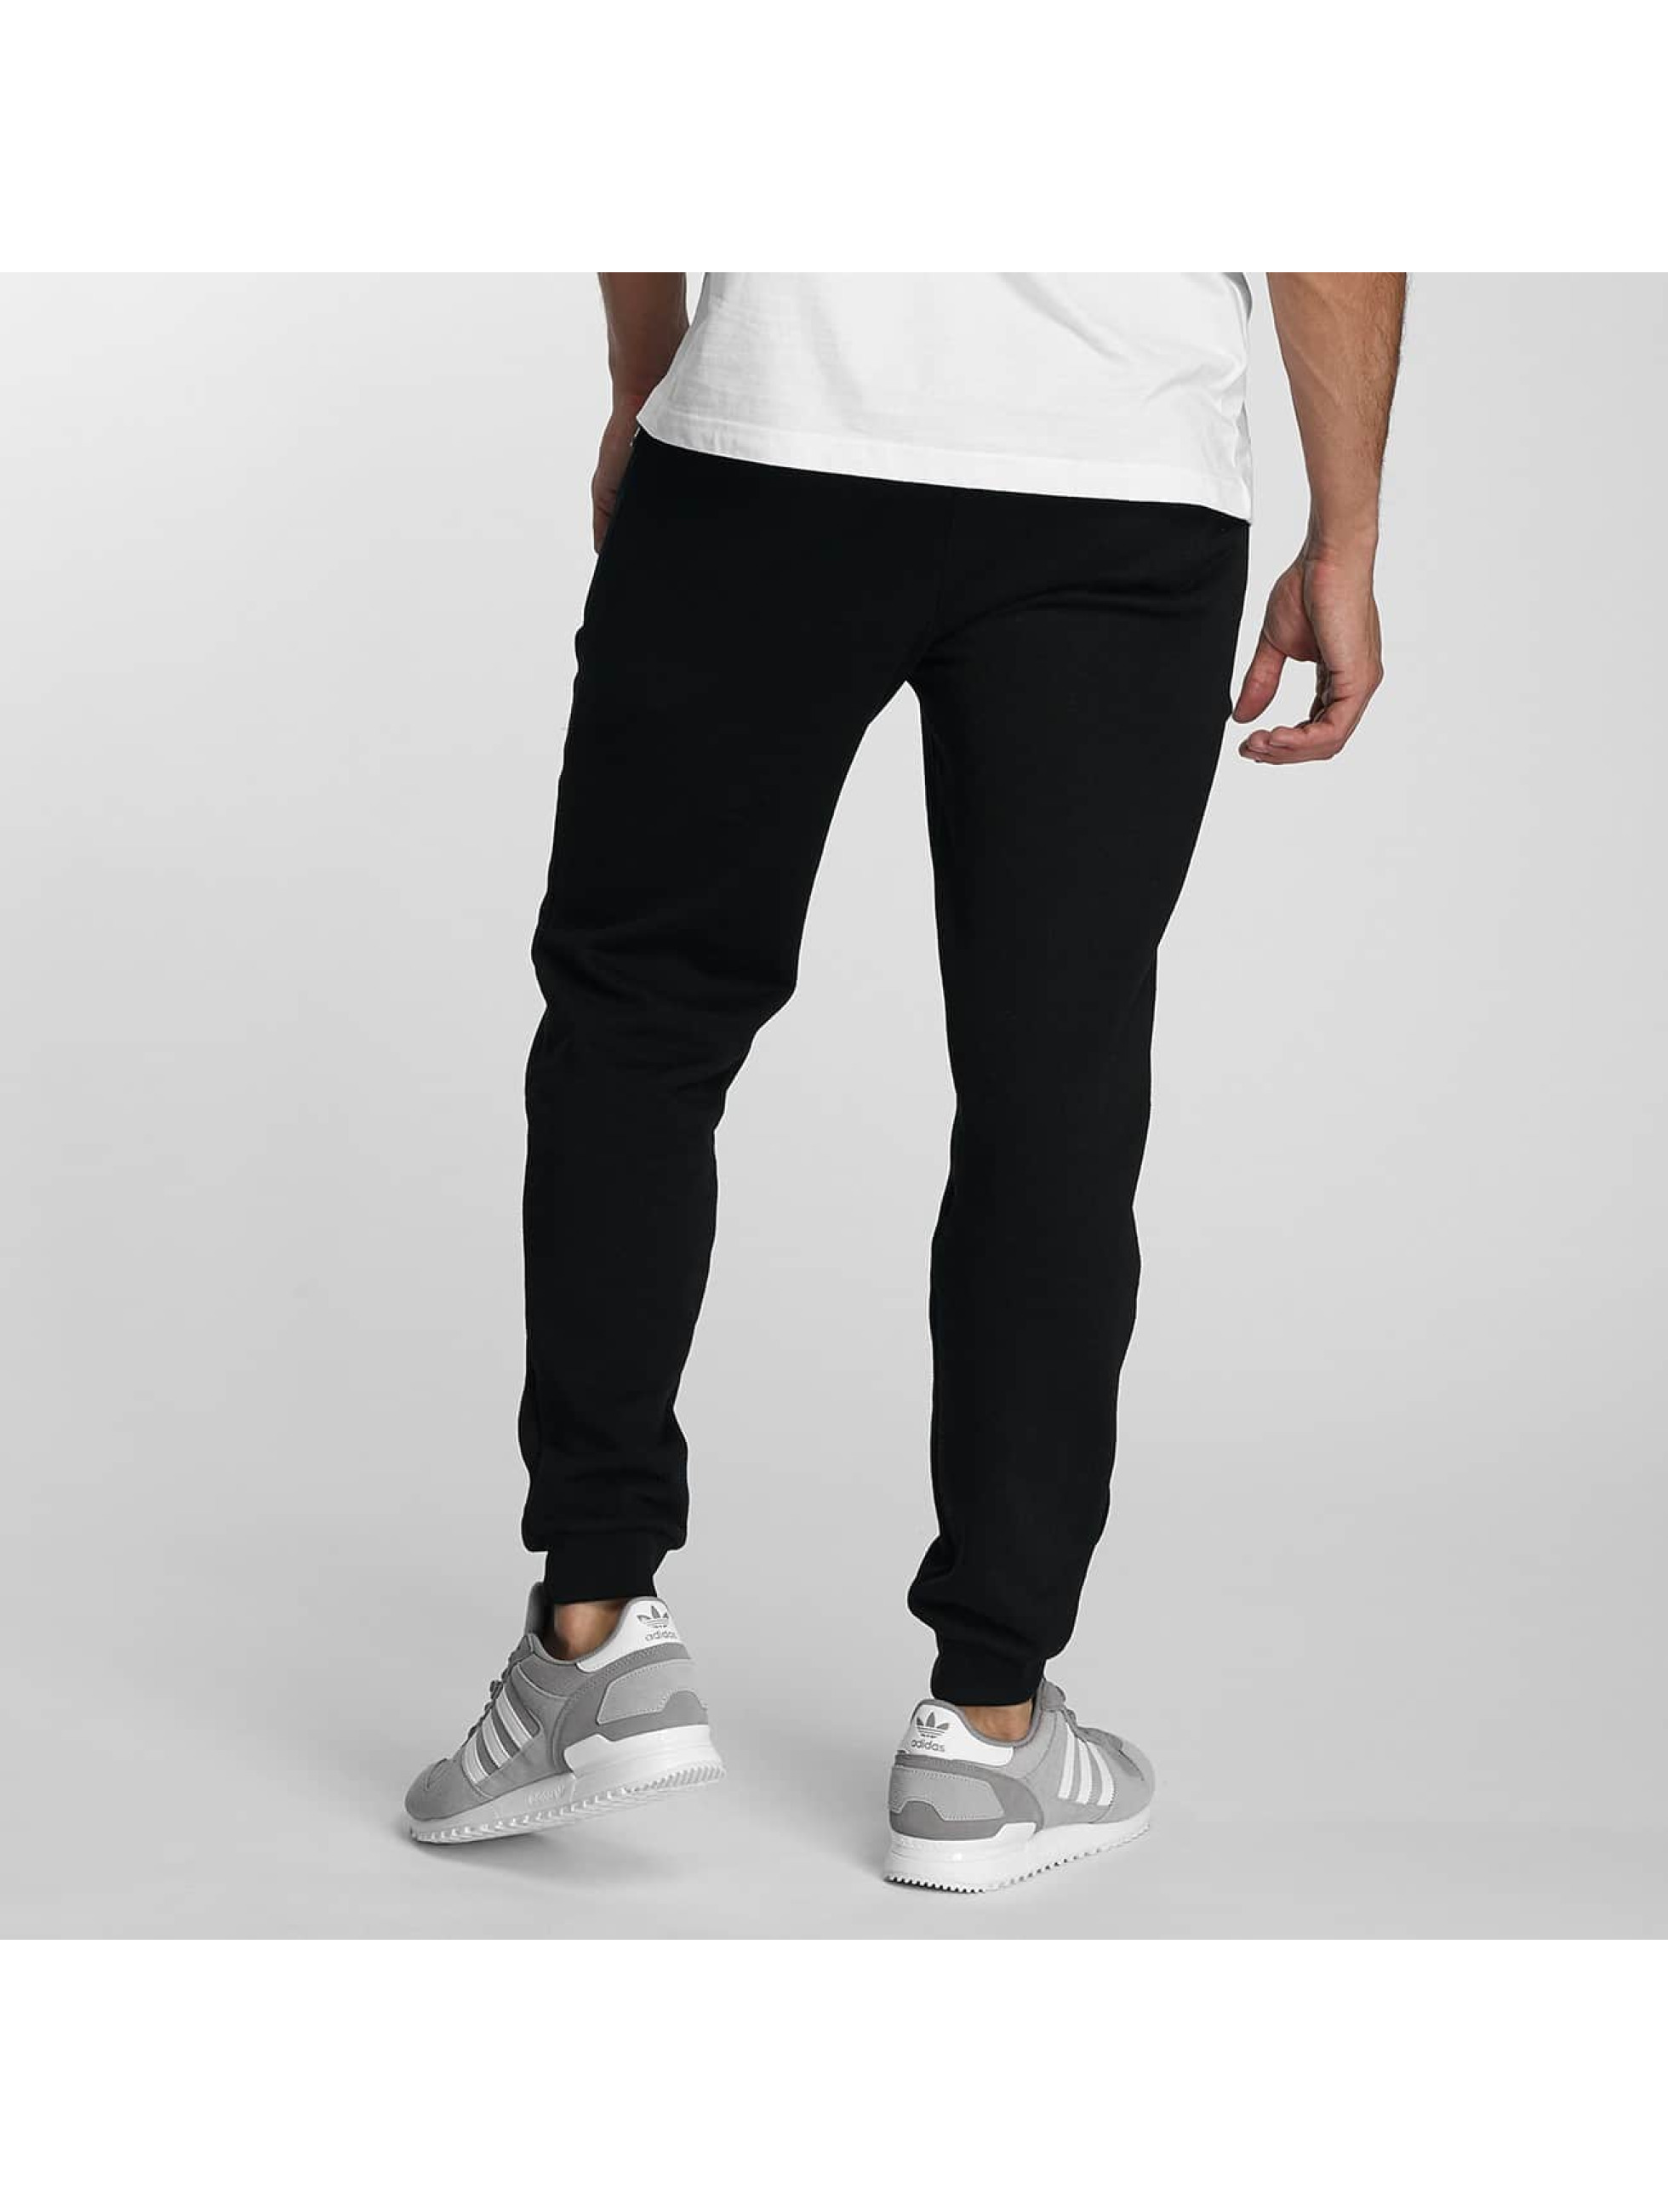 Pusher Apparel Pantalón deportivo 215 Jacking negro